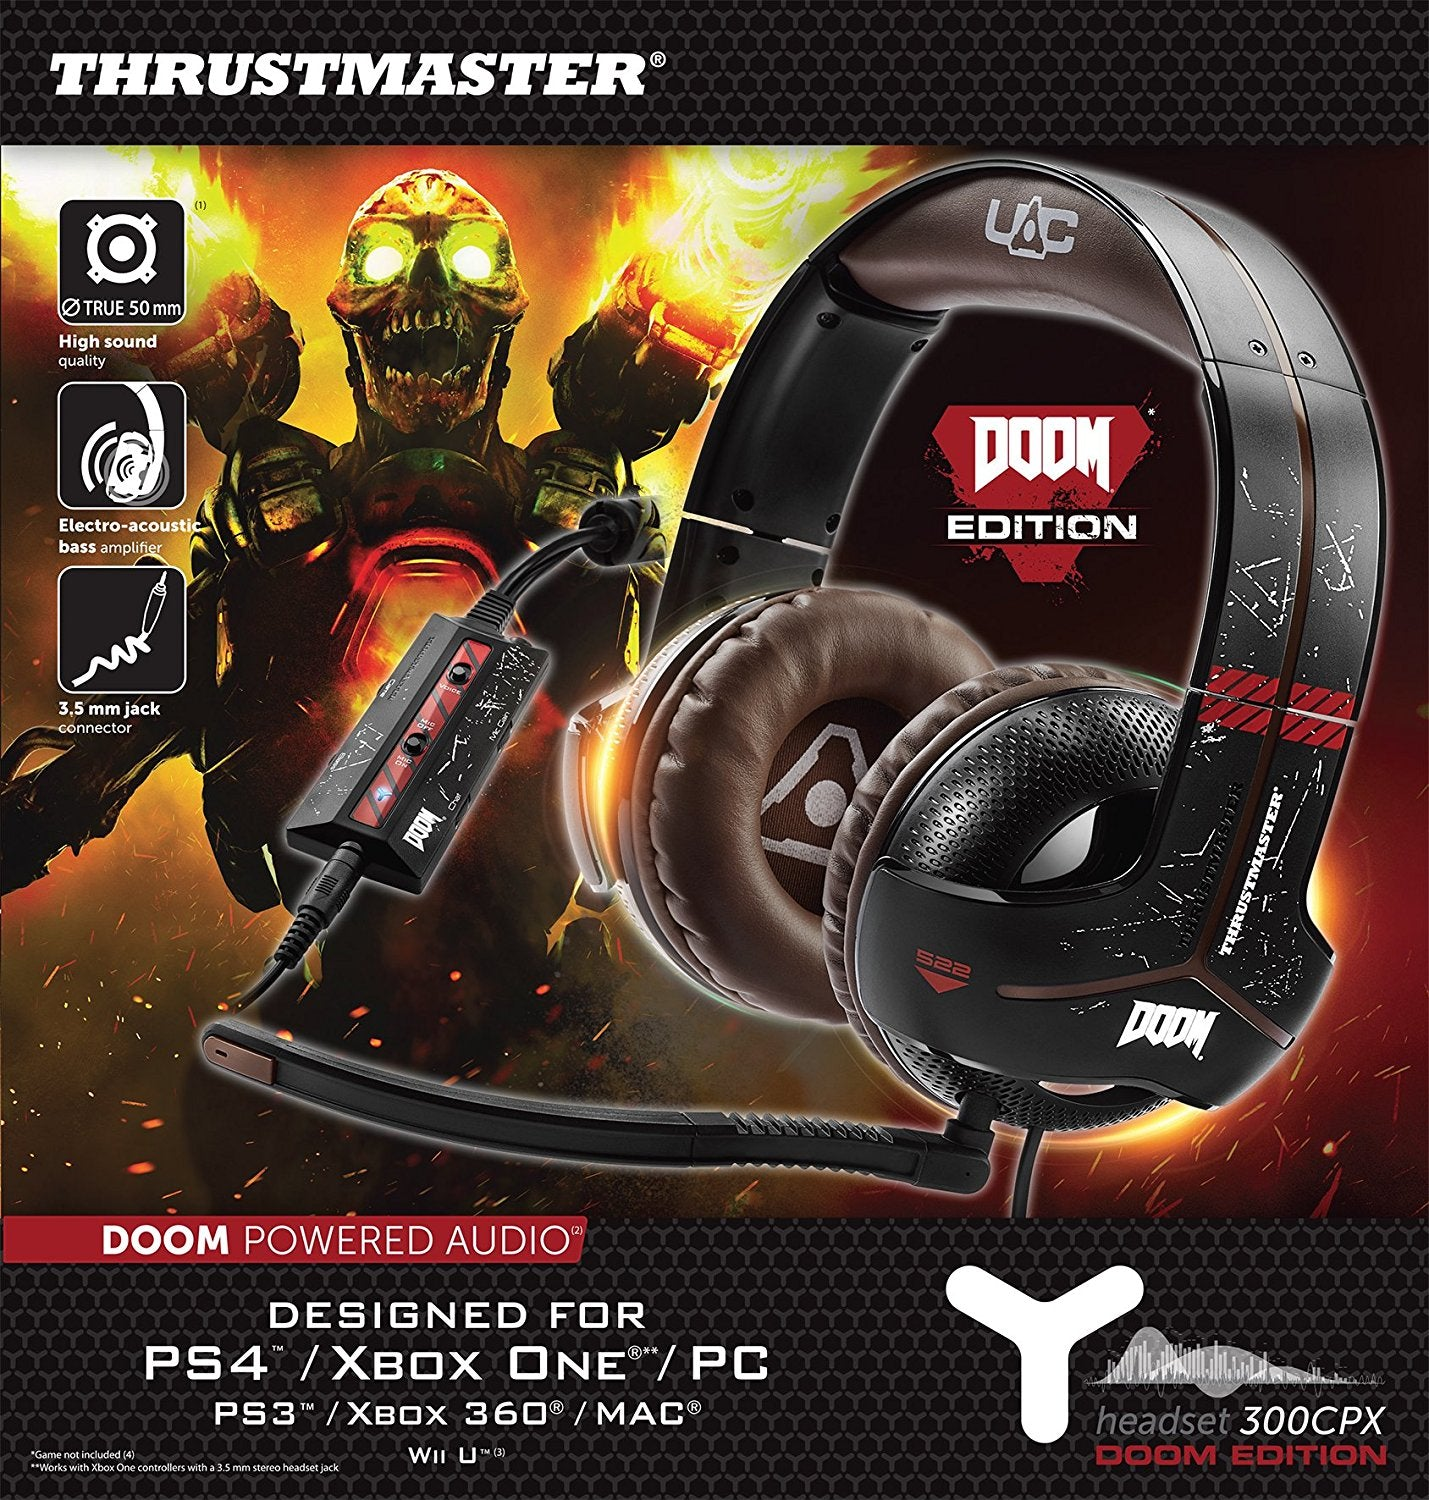 Thrustmaster Y-300CPX DOOM EDITION Gaming Headset